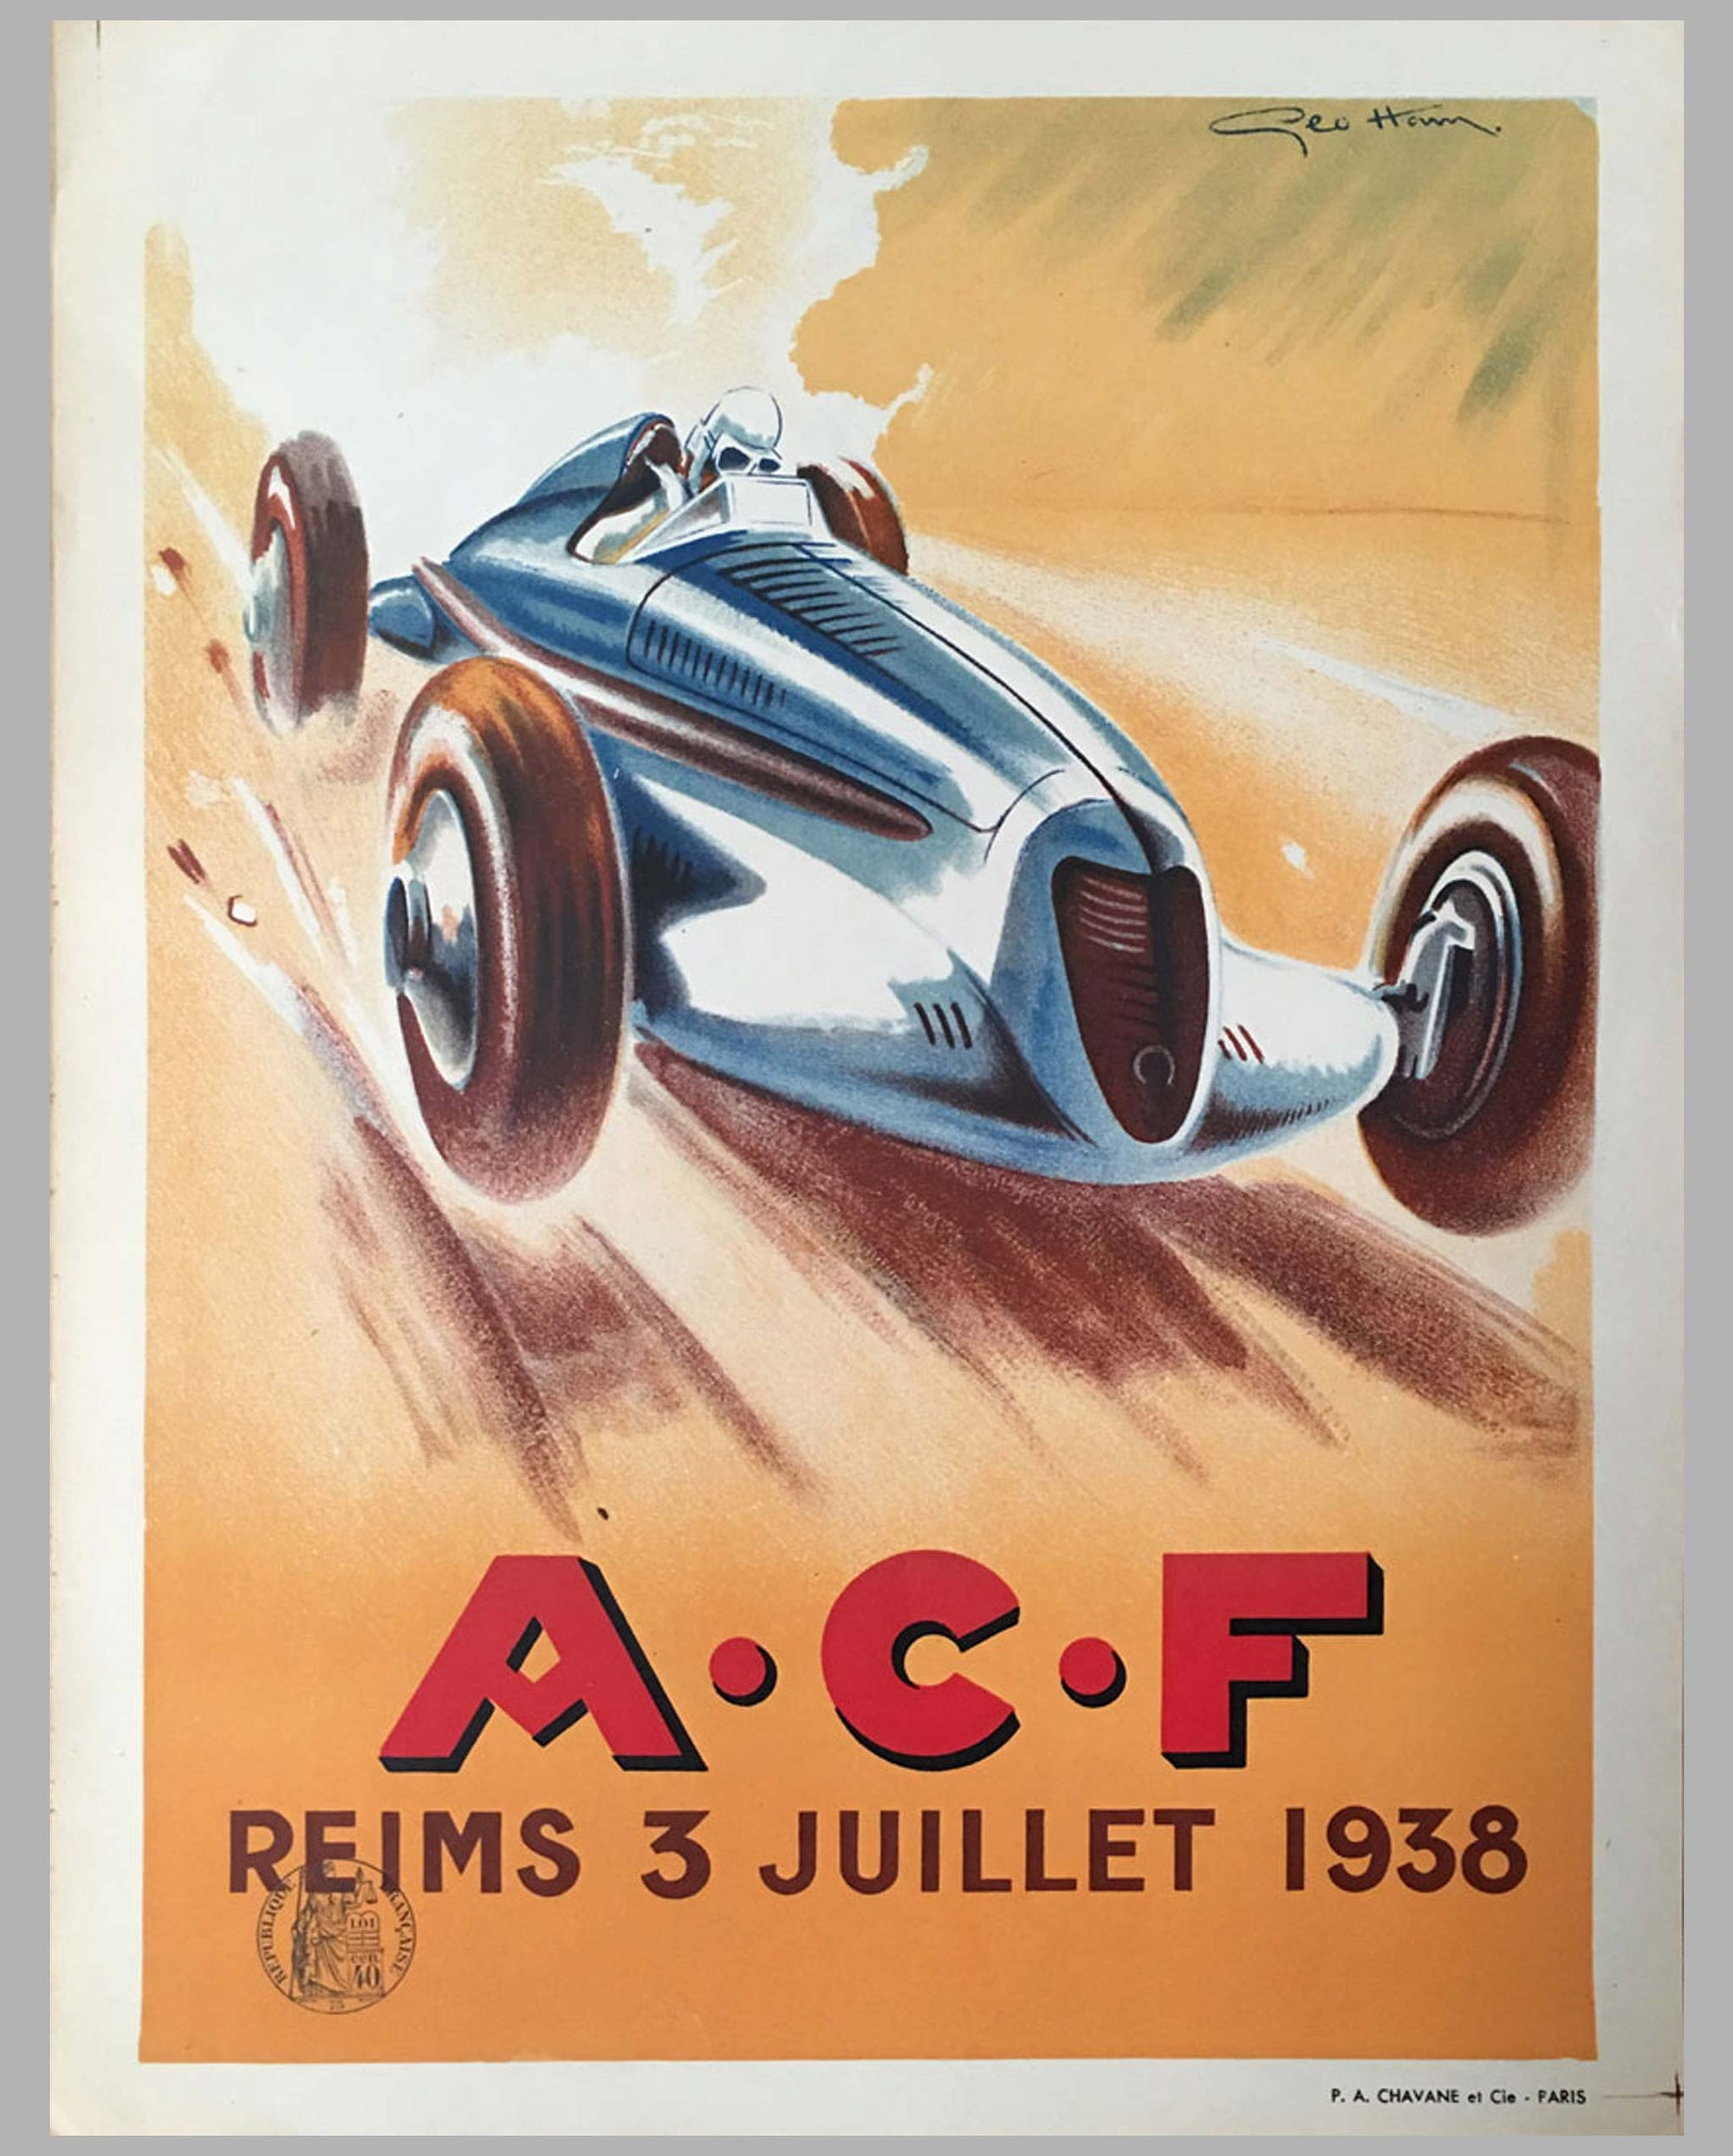 Grand Prix of France at Reims, 1938 multicolor official event poster by Geo Ham